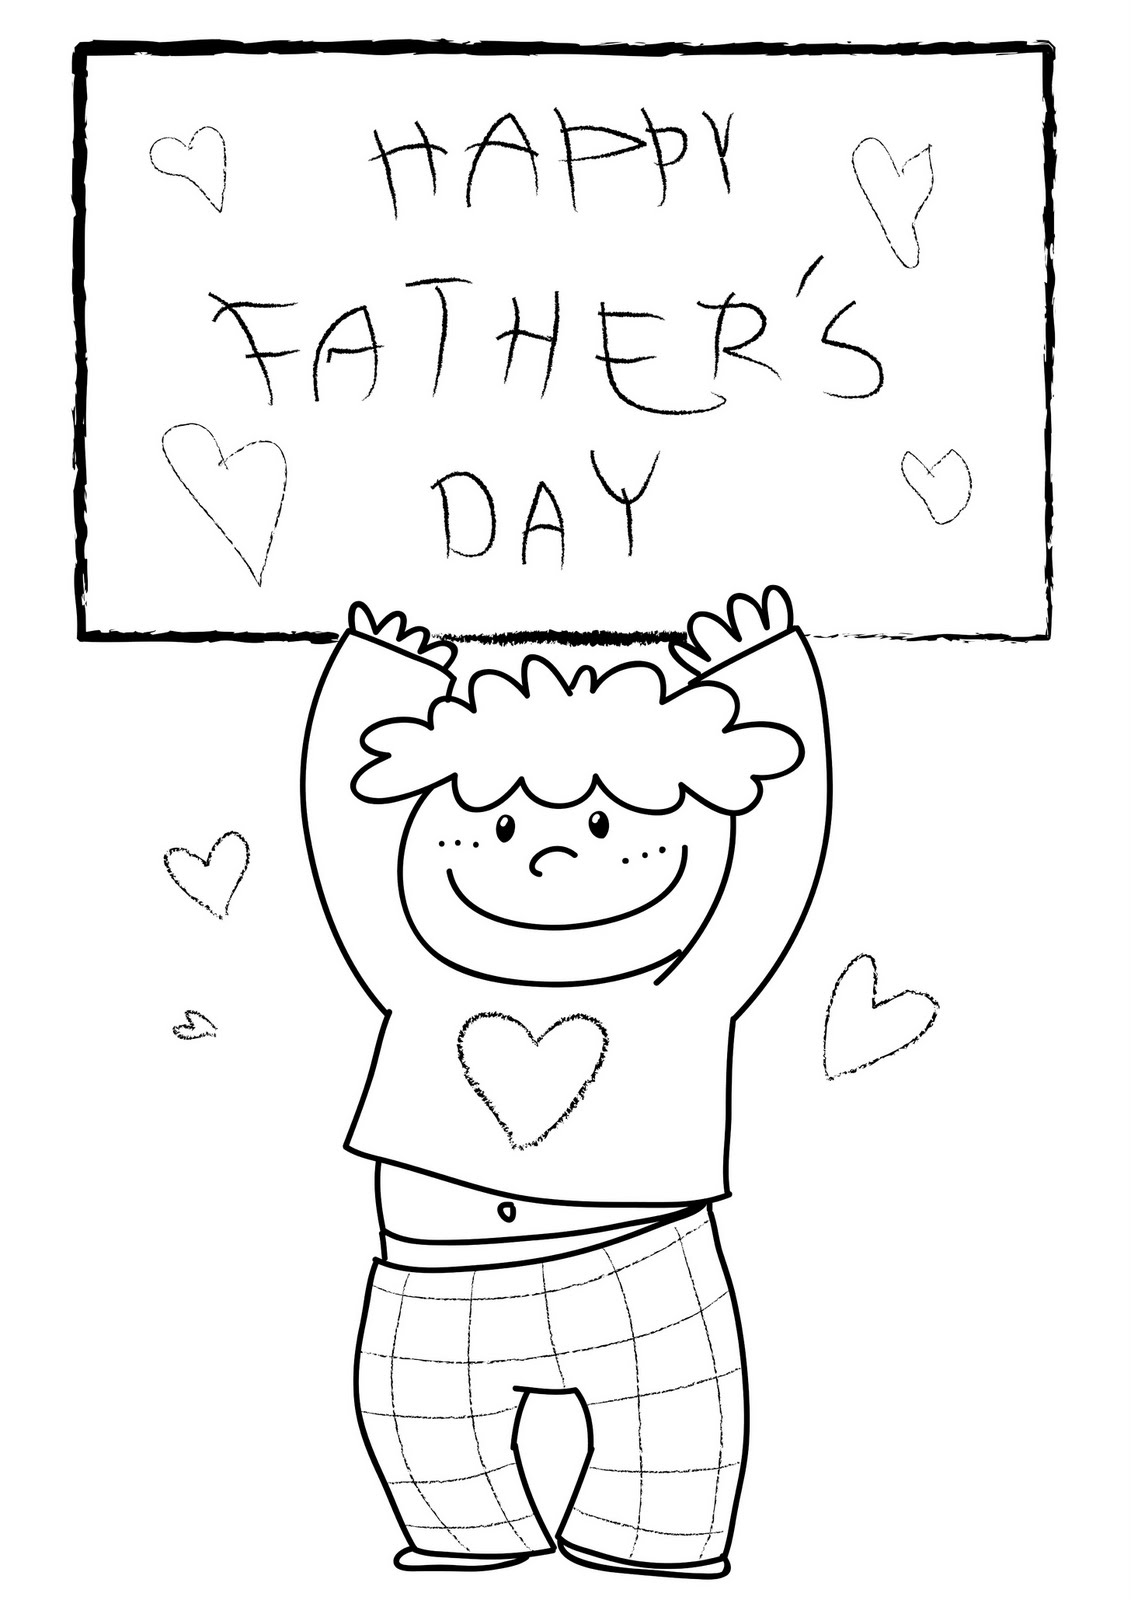 fahers day coloring pages - photo#18